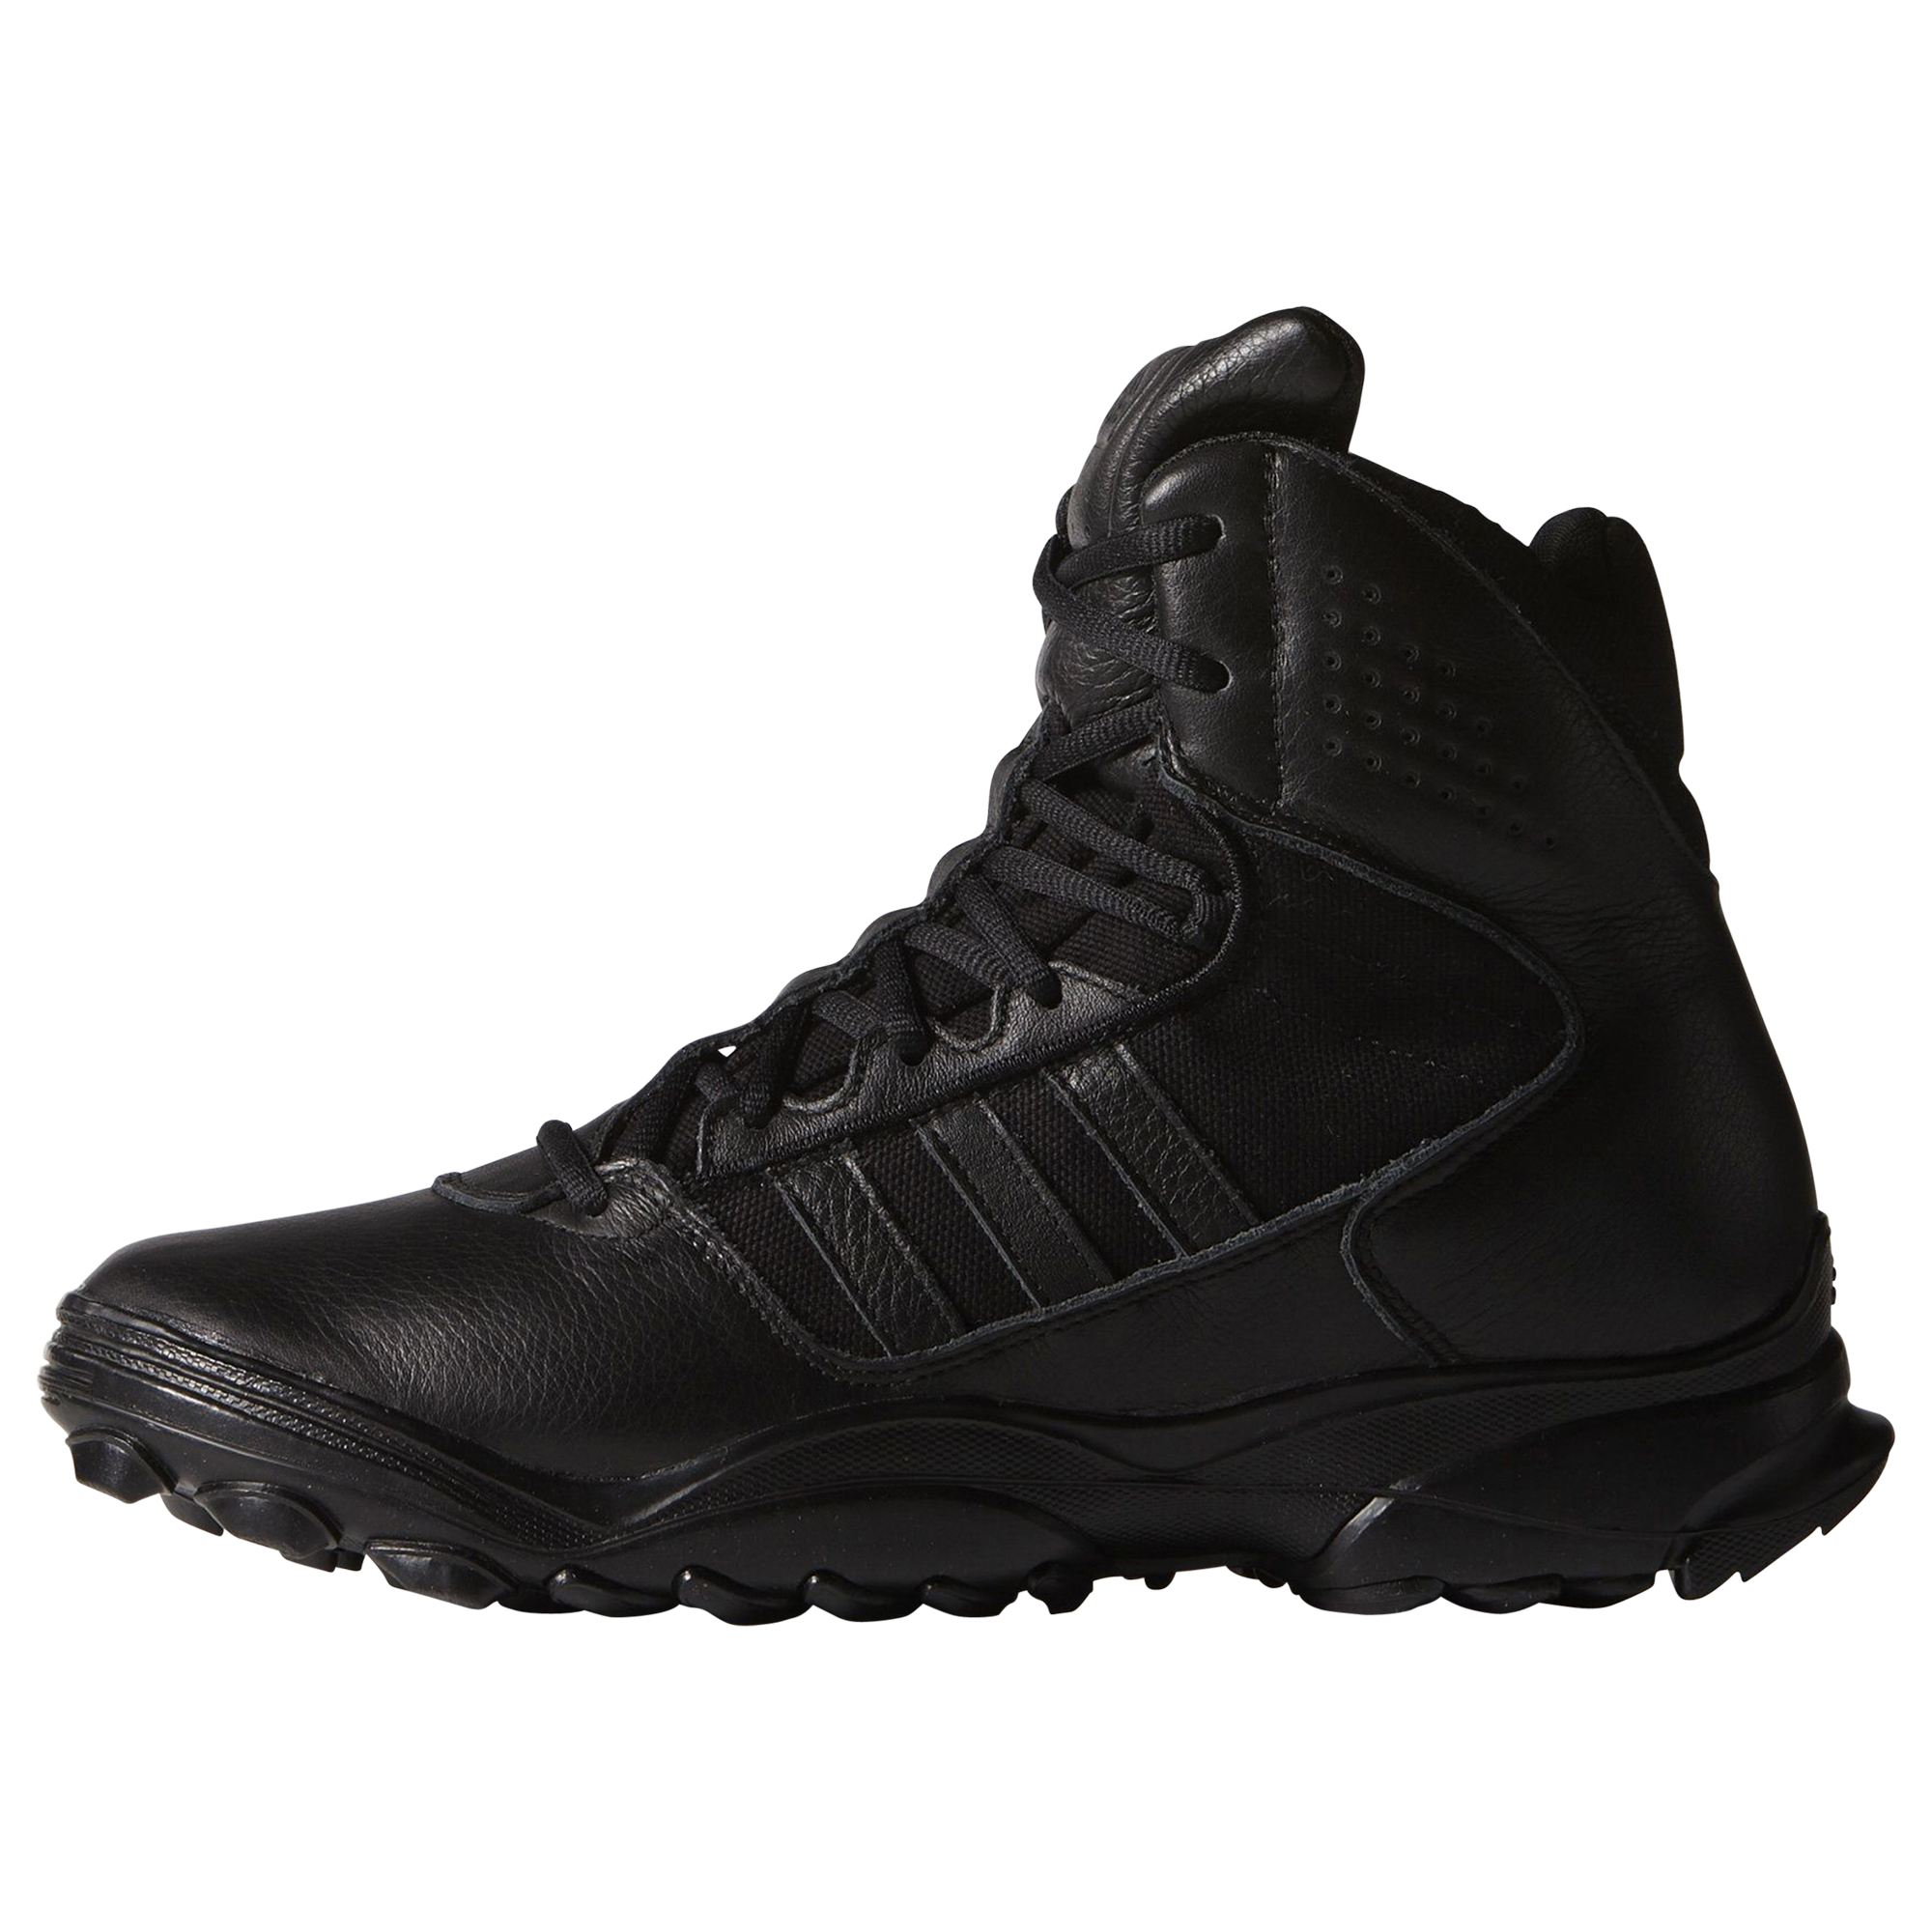 adidas gsg 9 7 schuhe stiefel boots outdoor herren schwarz. Black Bedroom Furniture Sets. Home Design Ideas